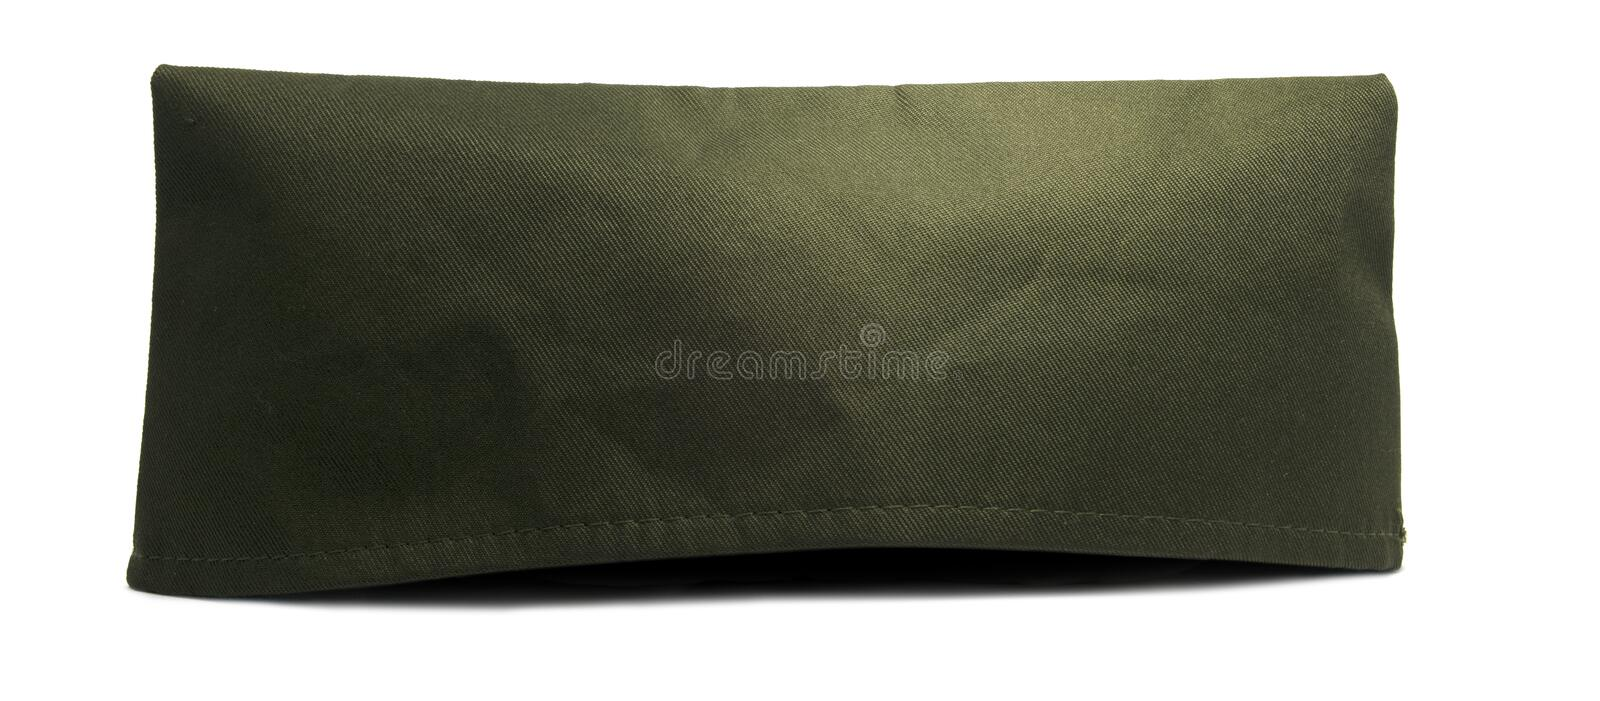 Isolated Green Army Cap. United States green army hat isolated on a white background royalty free stock photography